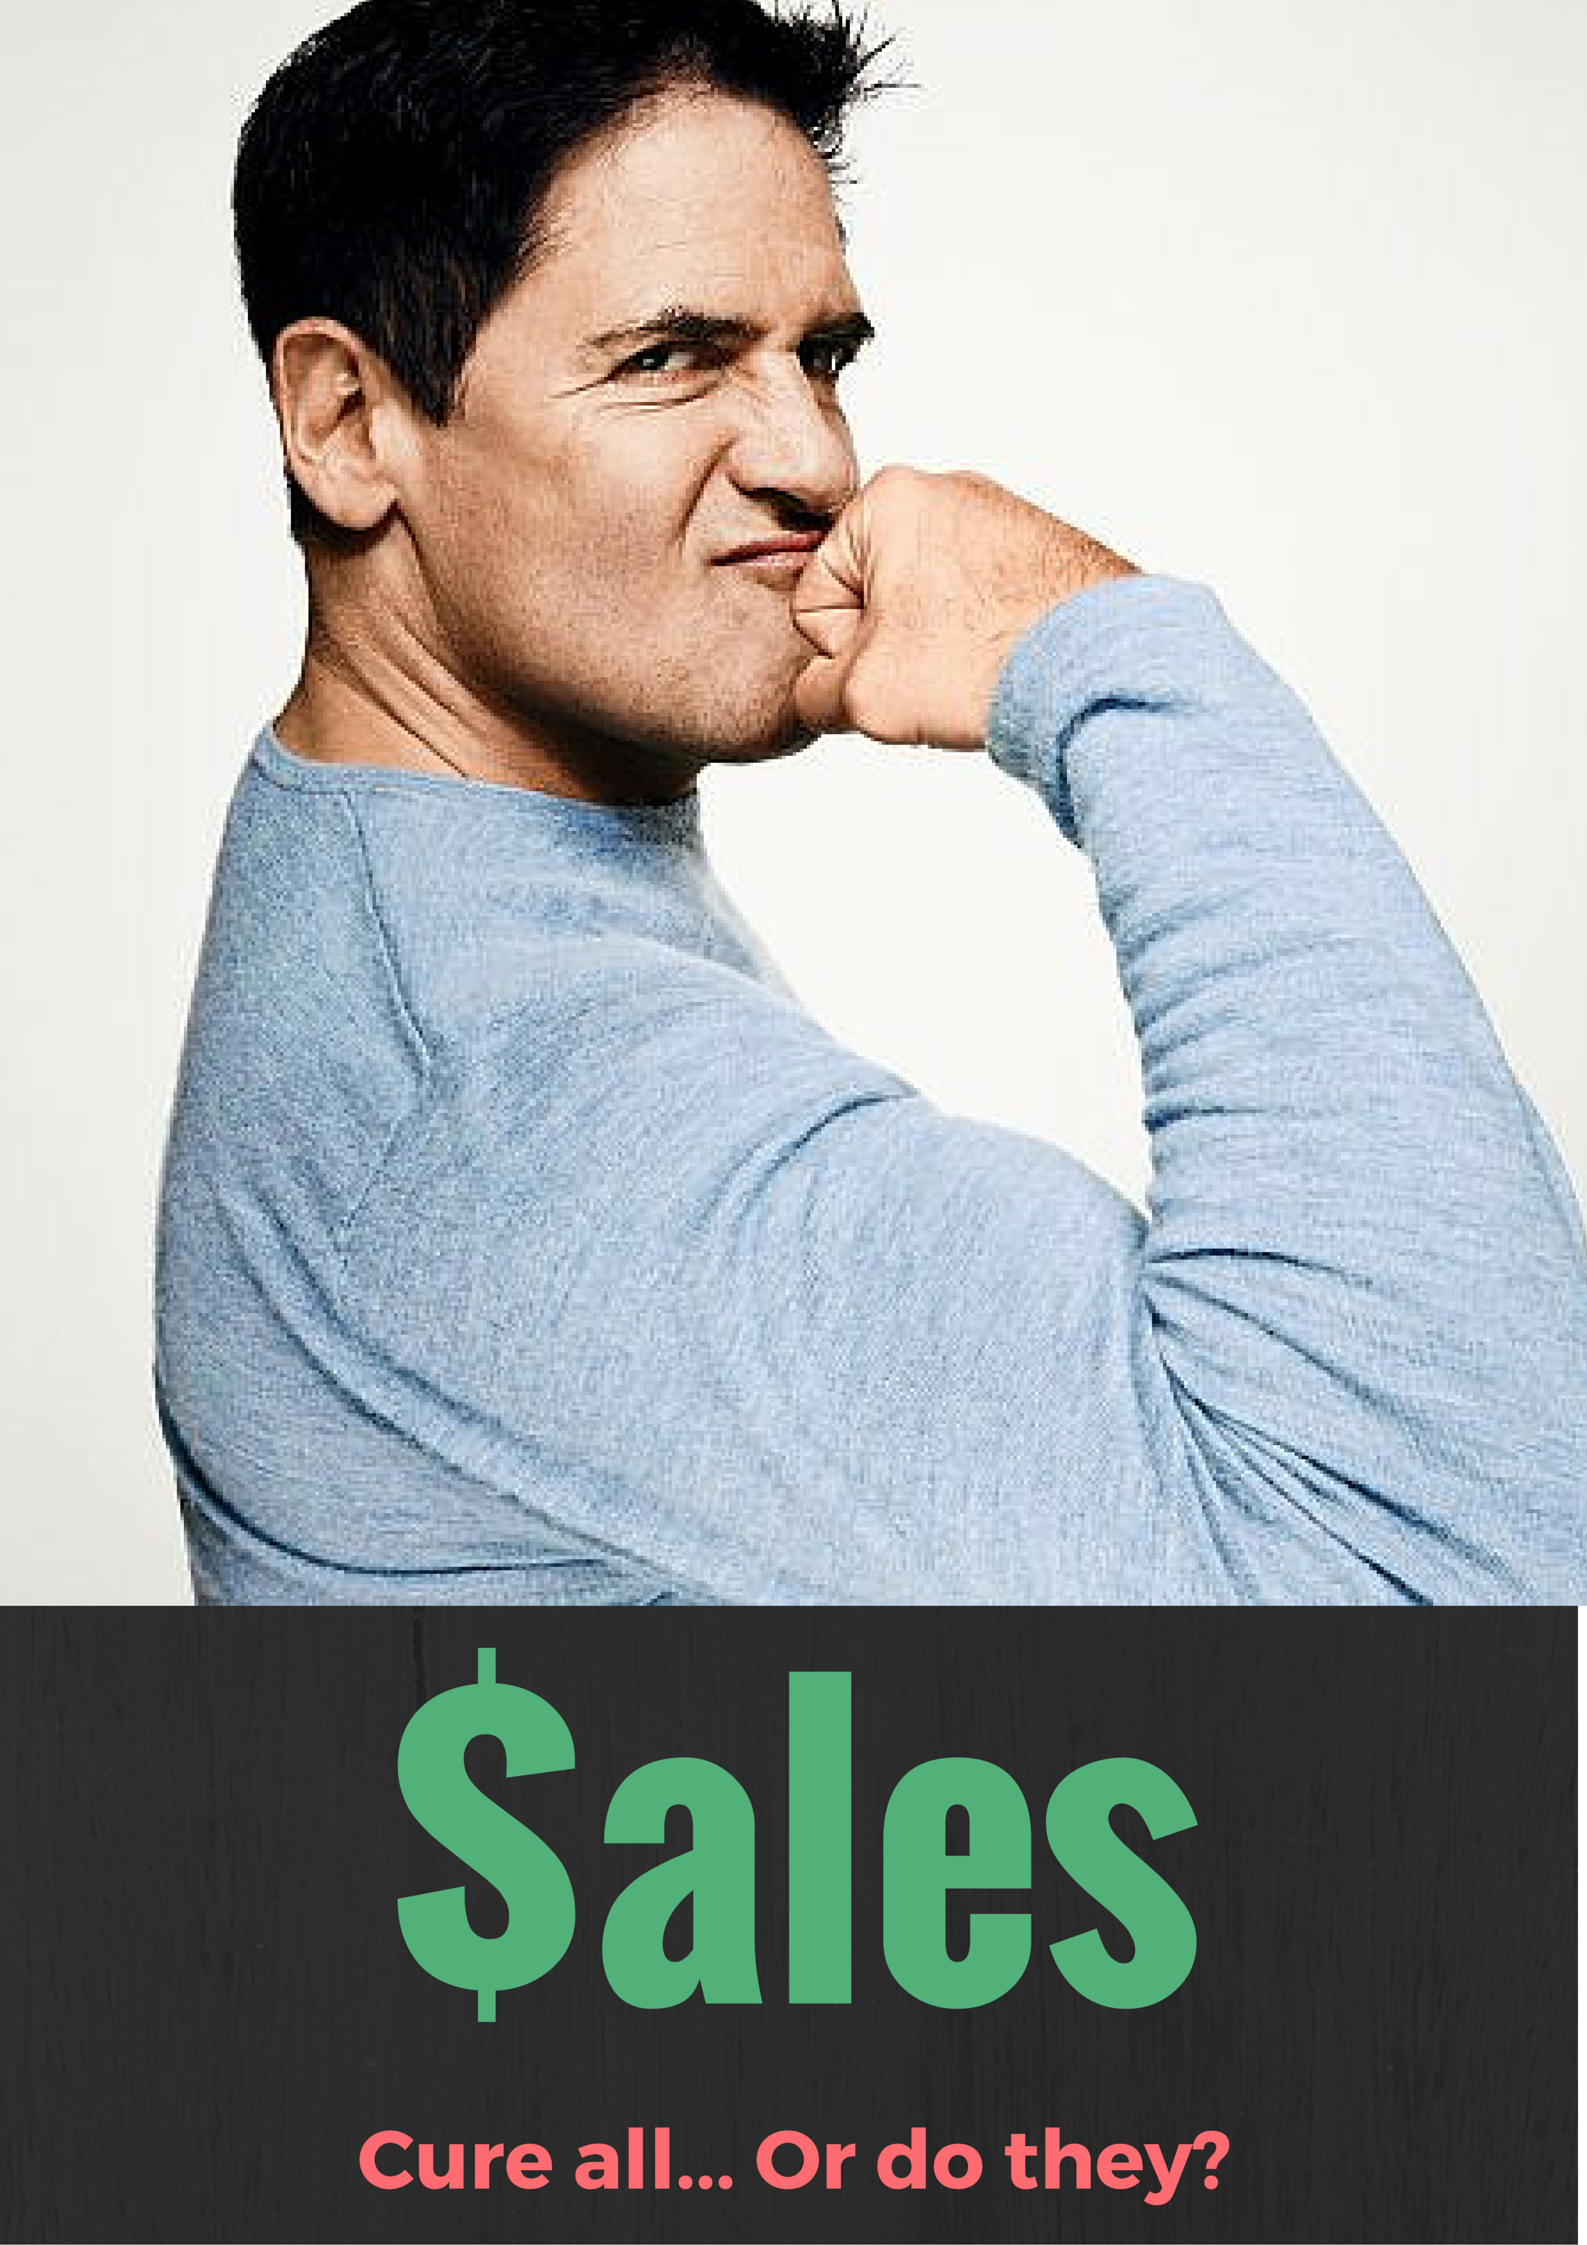 Sales cure all...